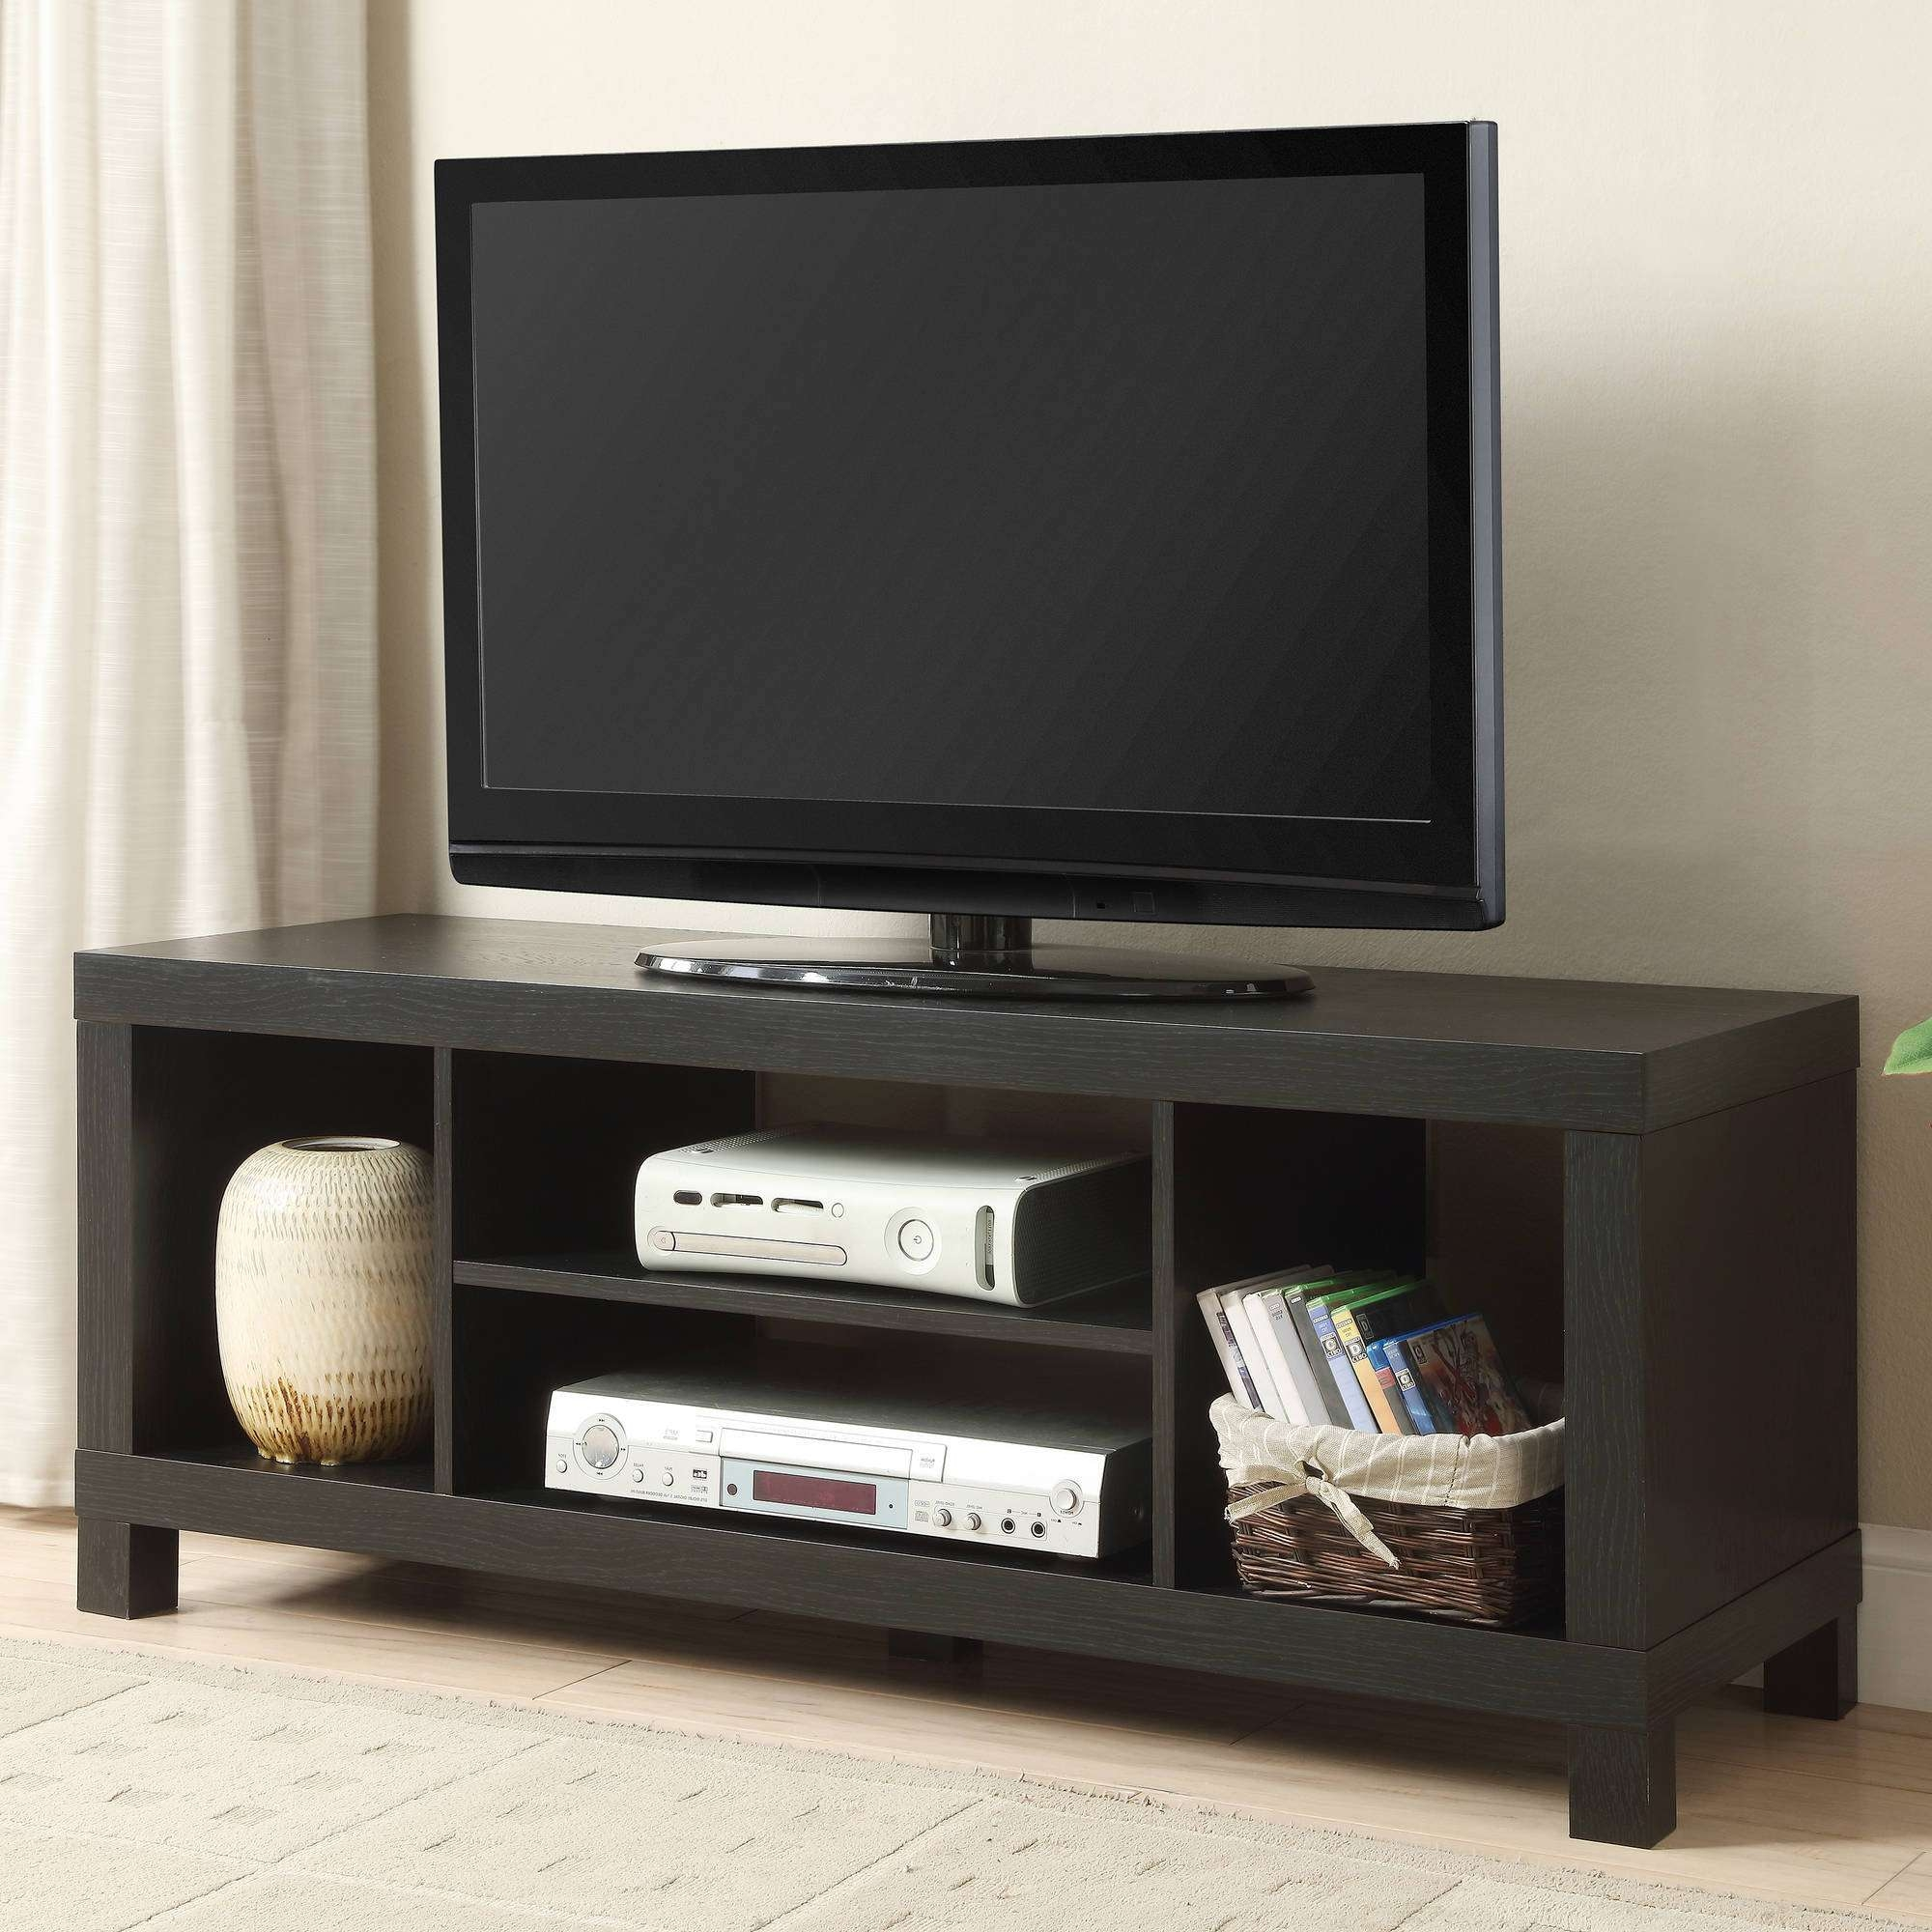 Tv Stands – Walmart For Rustic 60 Inch Tv Stands (View 12 of 15)